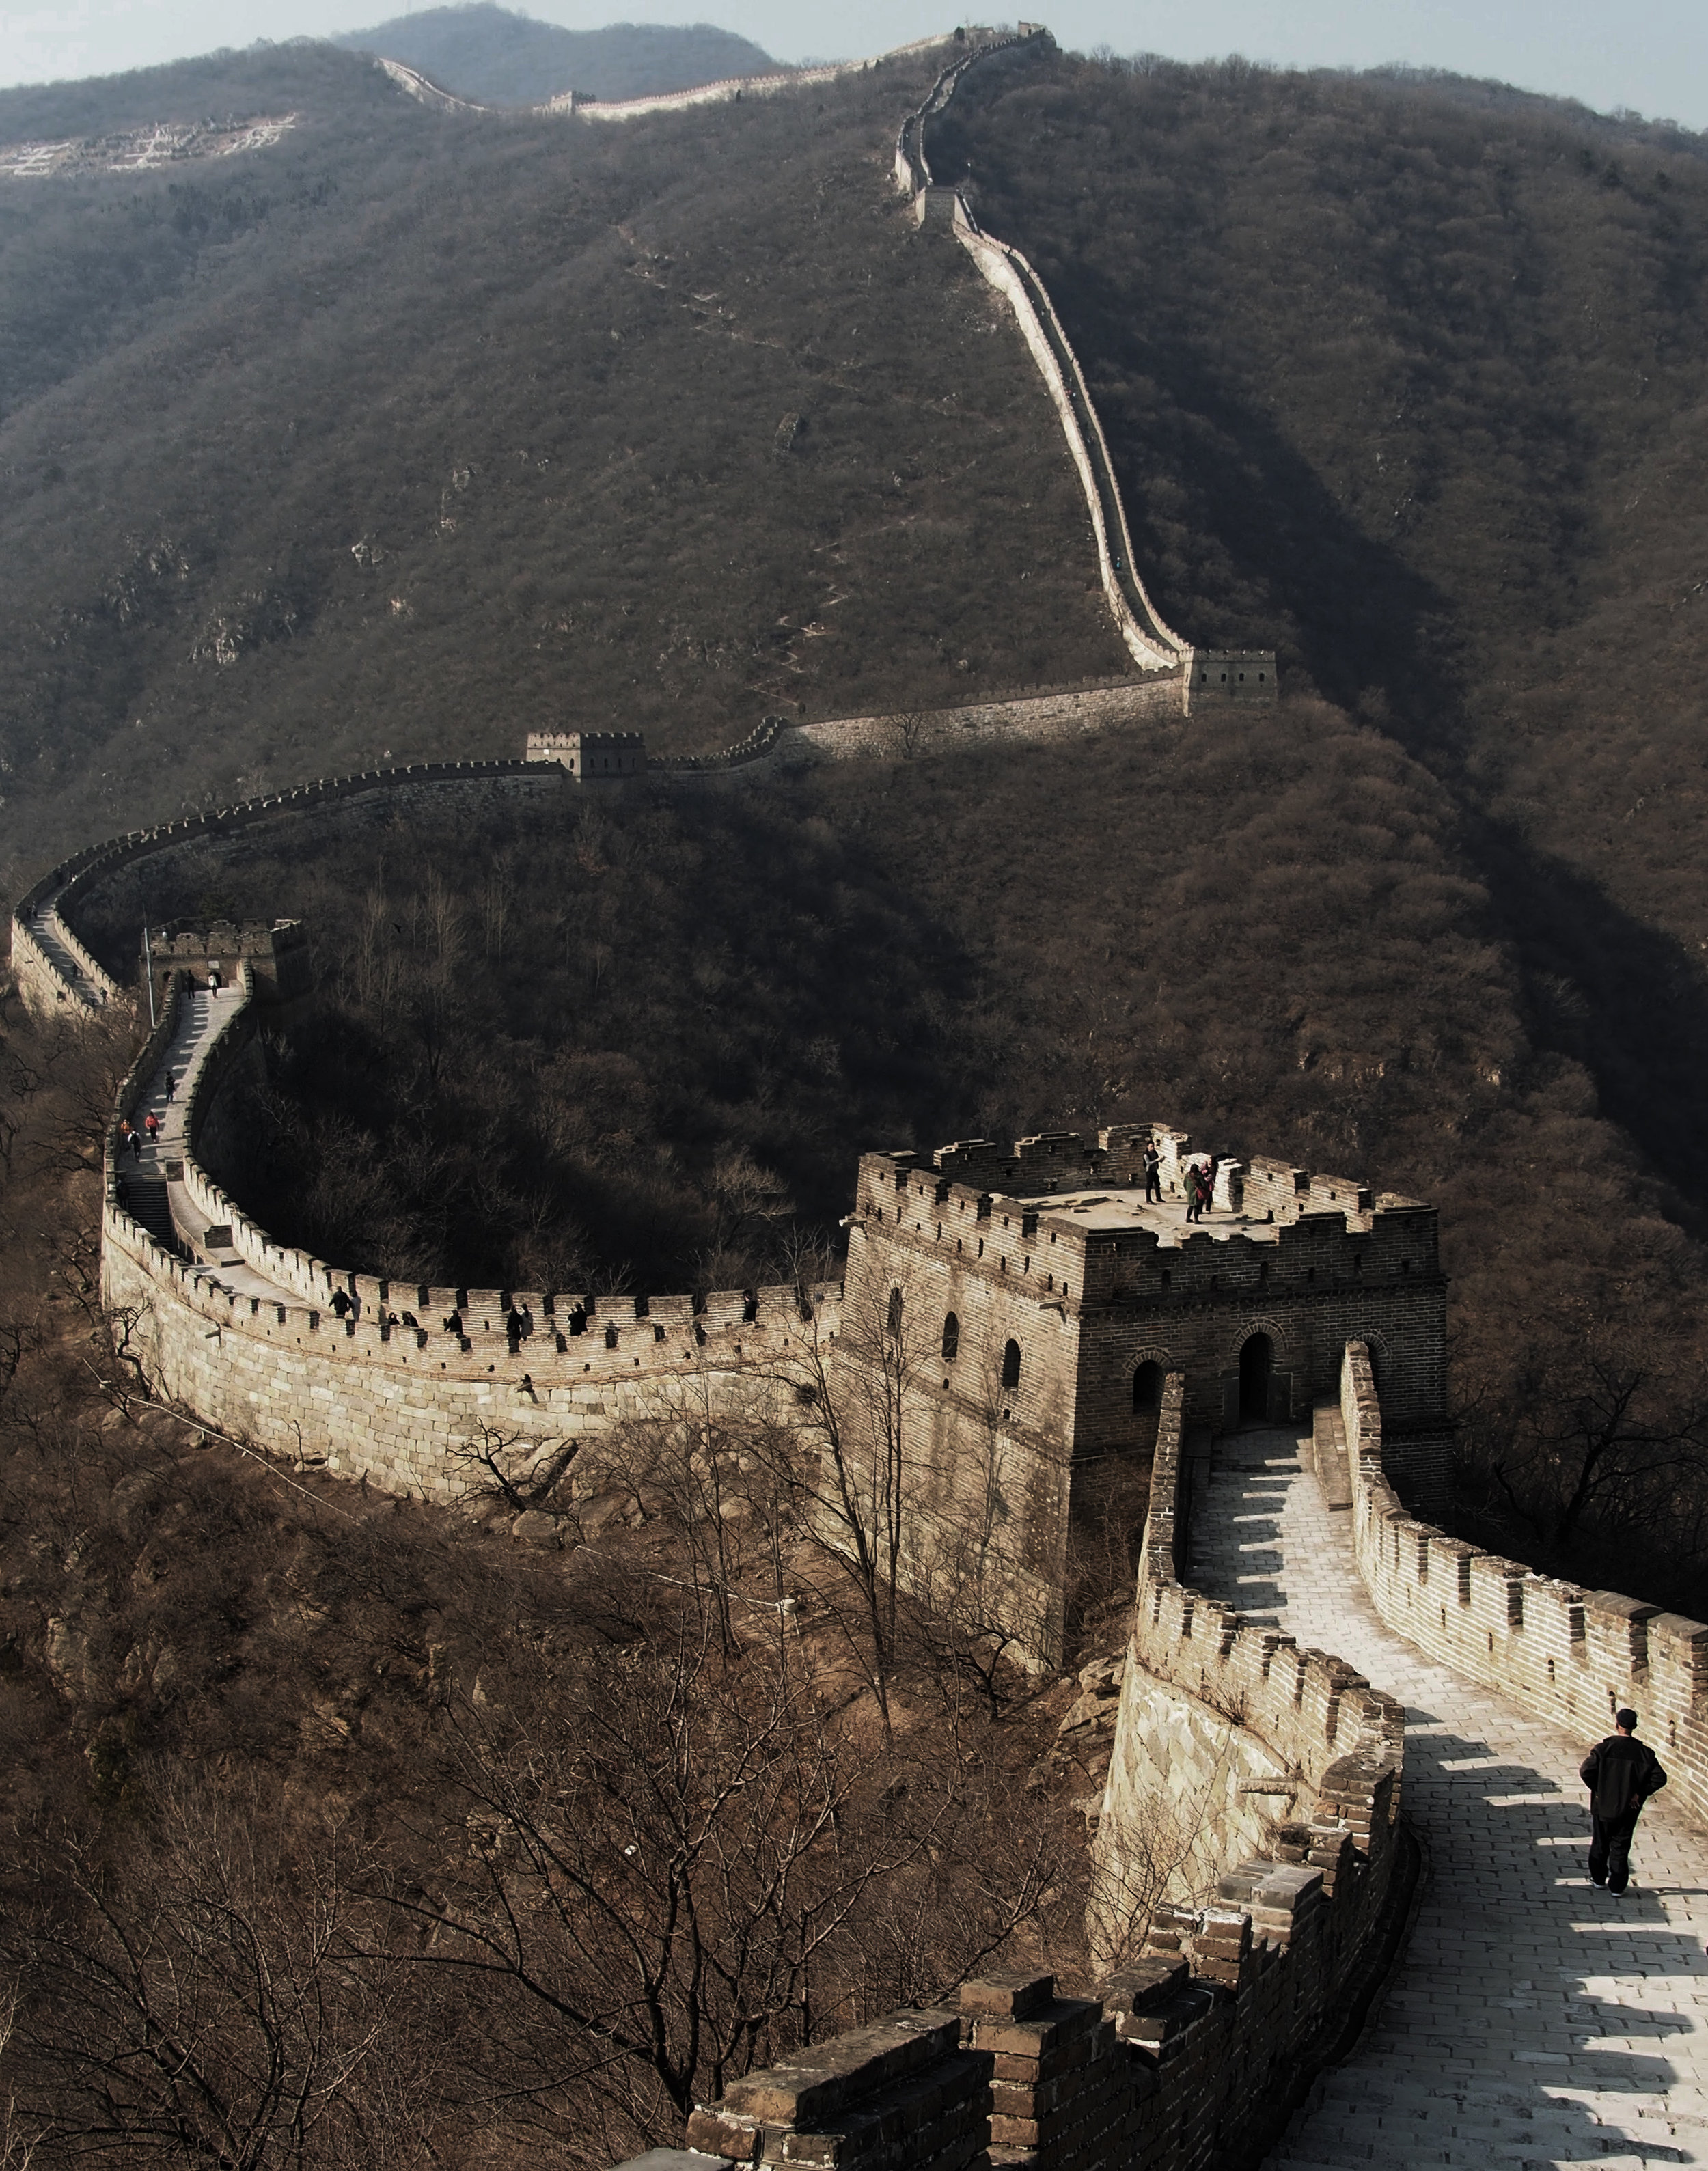 The Application Process - HOw did i get my job in china